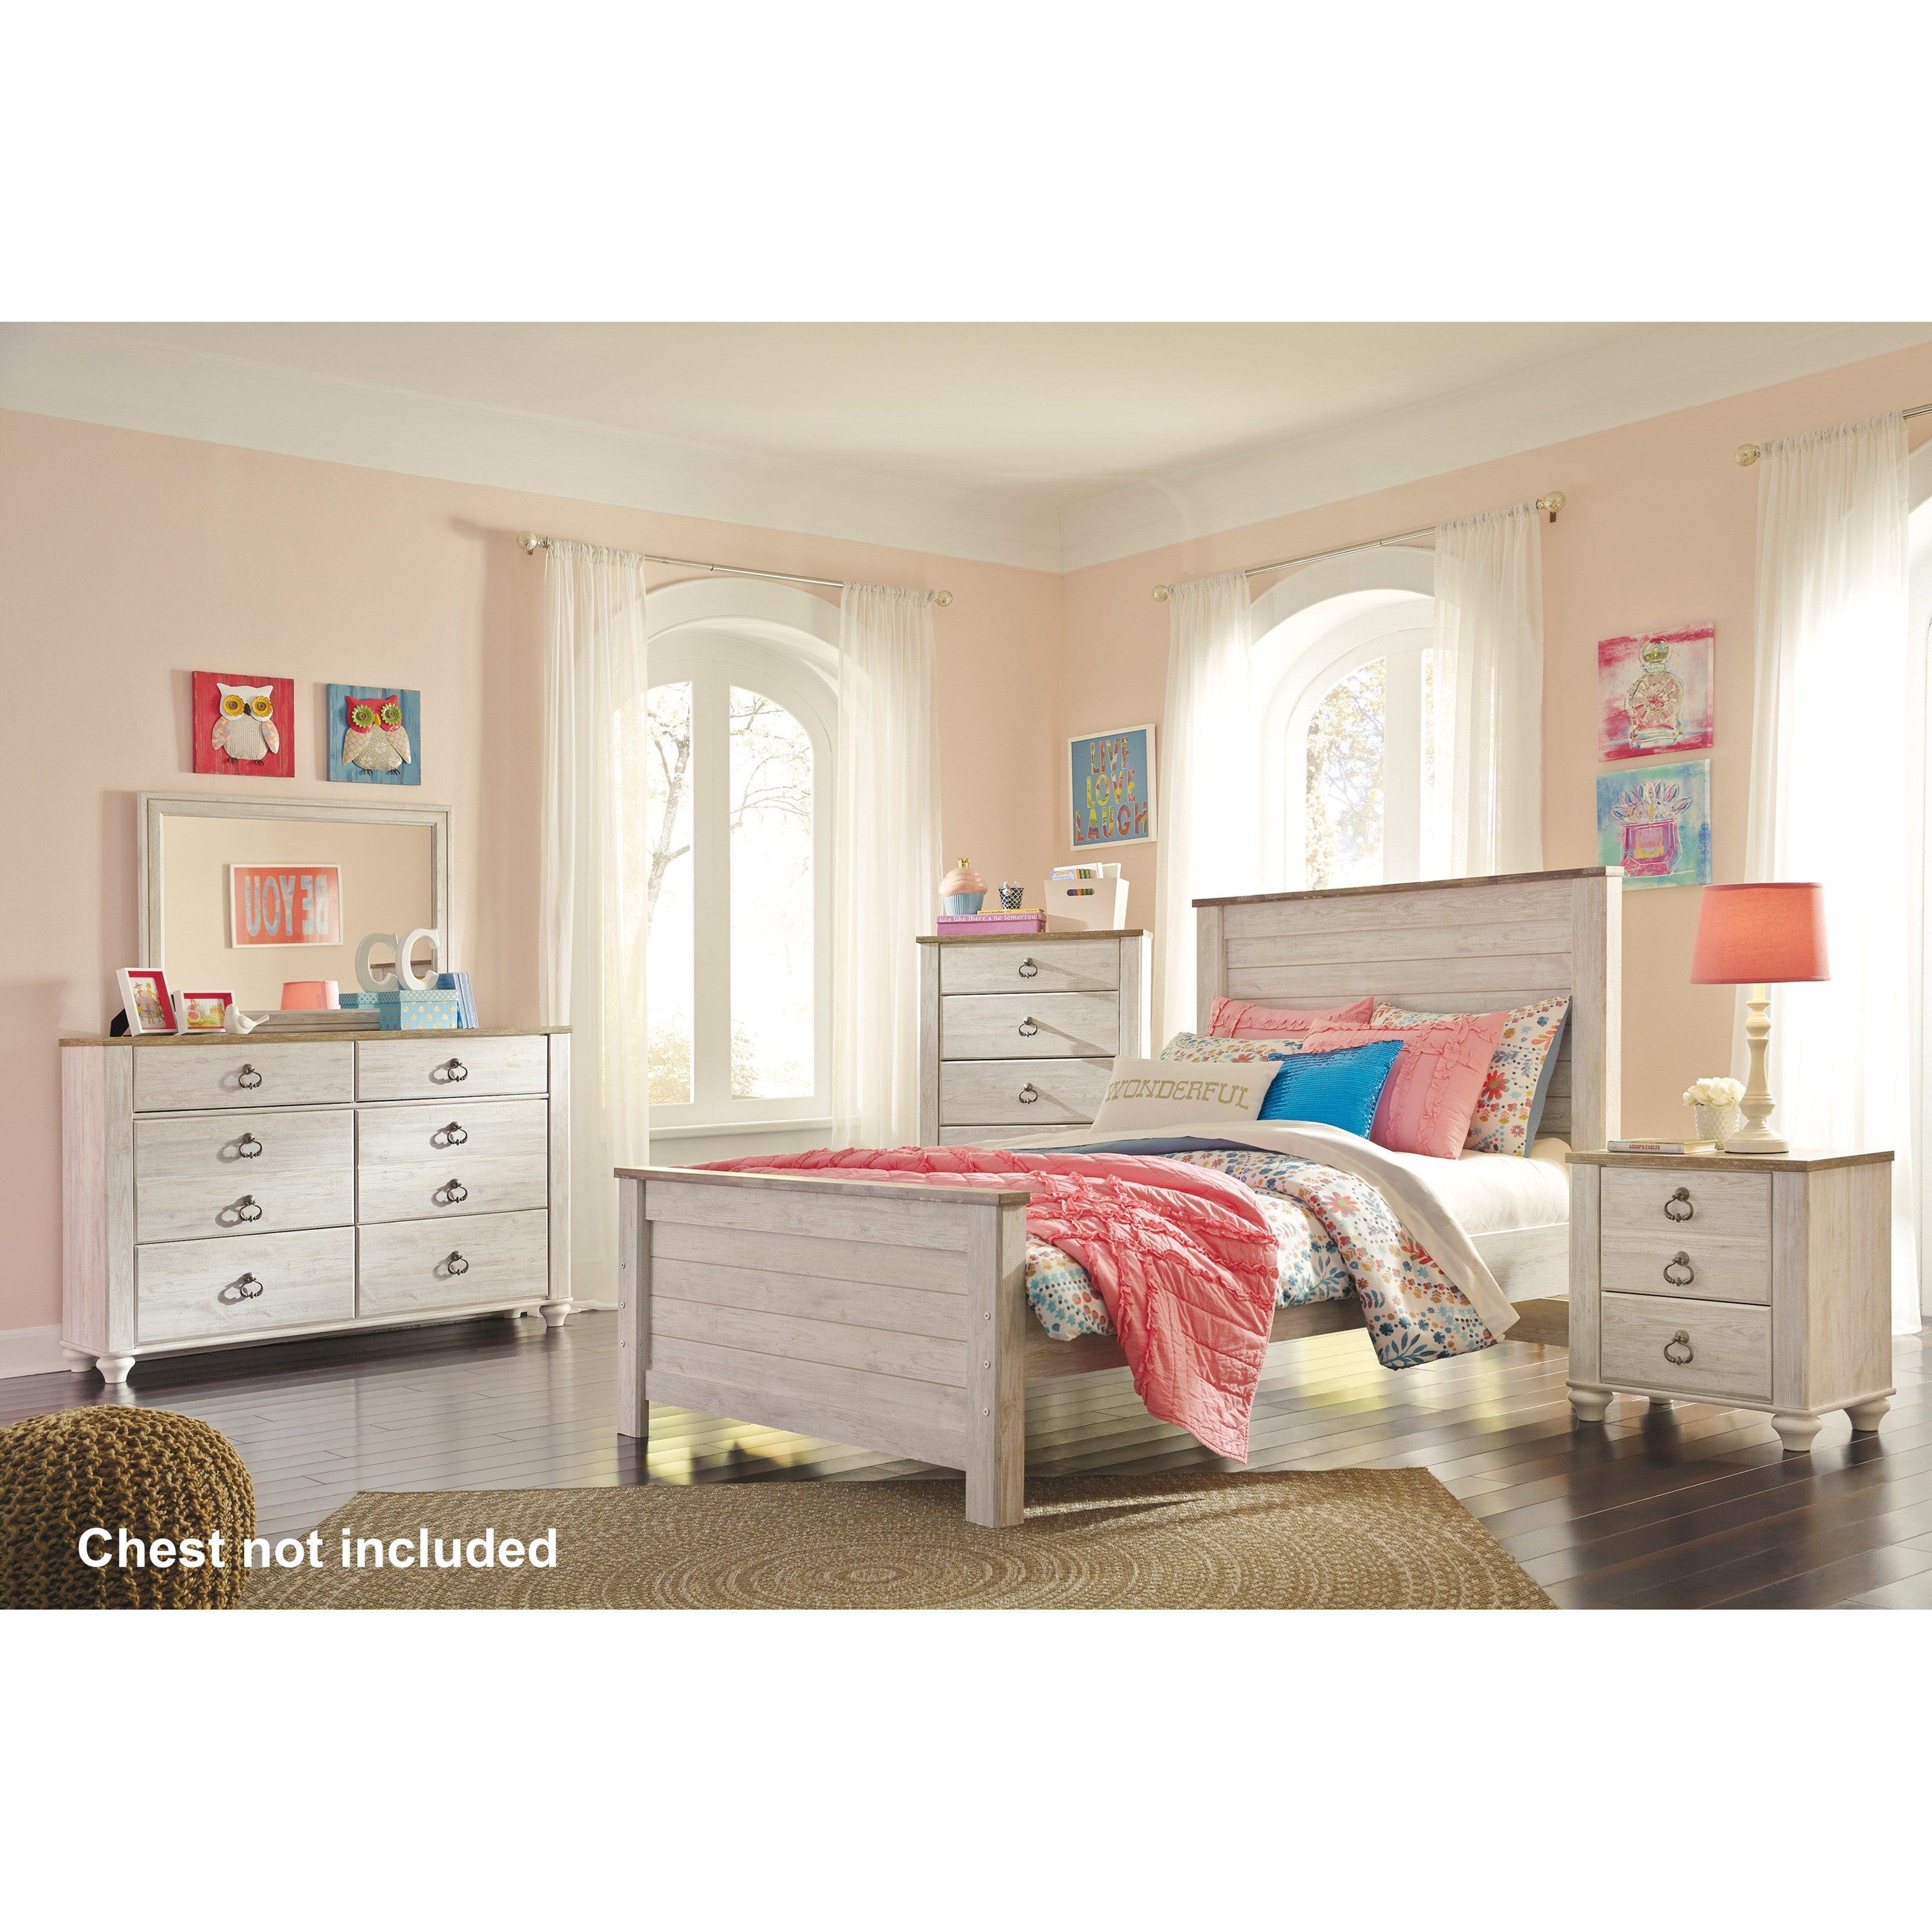 Willowton Full Bedroom Group by Signature Design by Ashley at Beck's Furniture